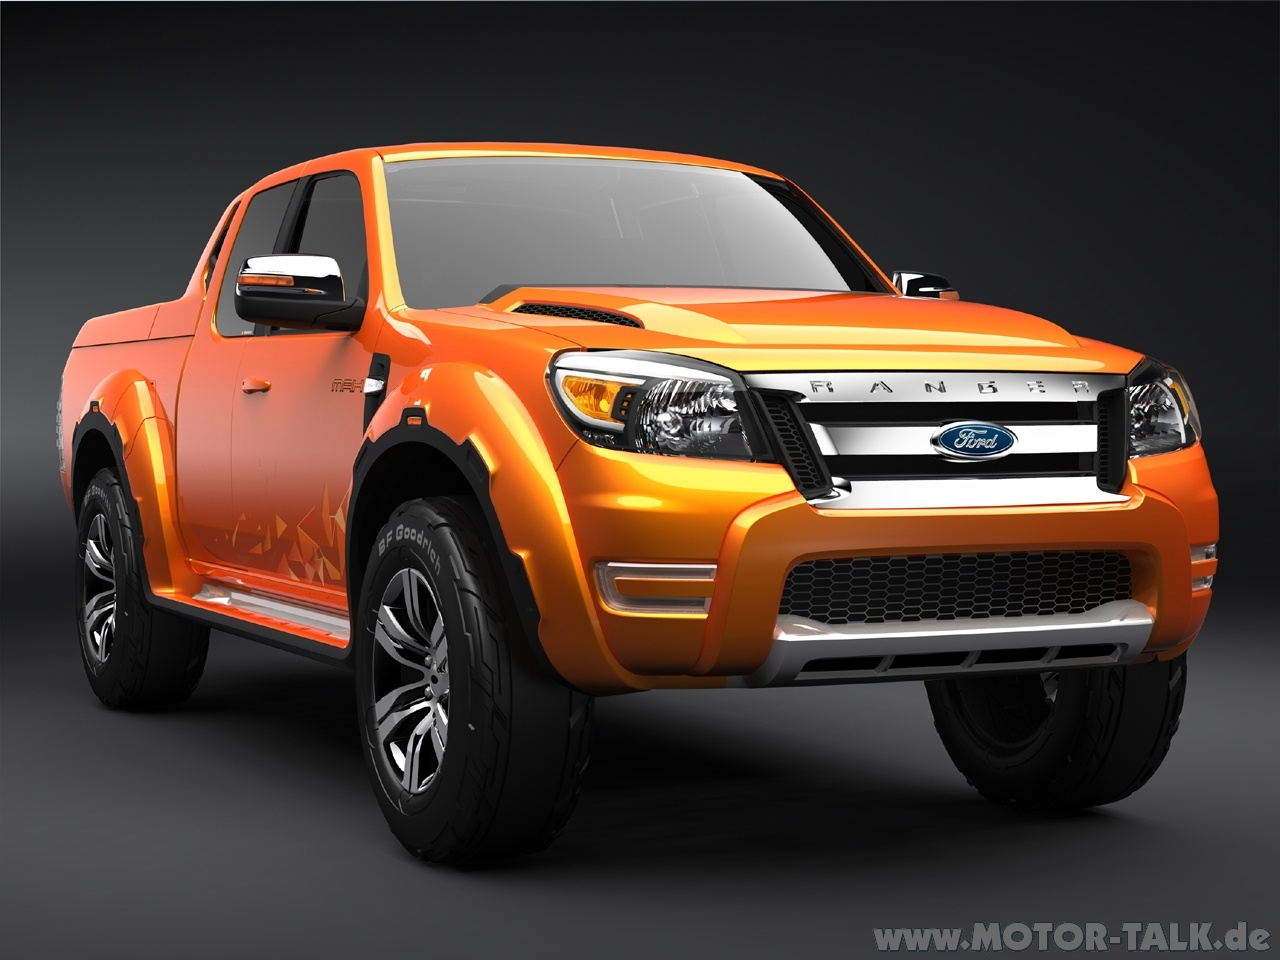 New Ford Ranger Trucks